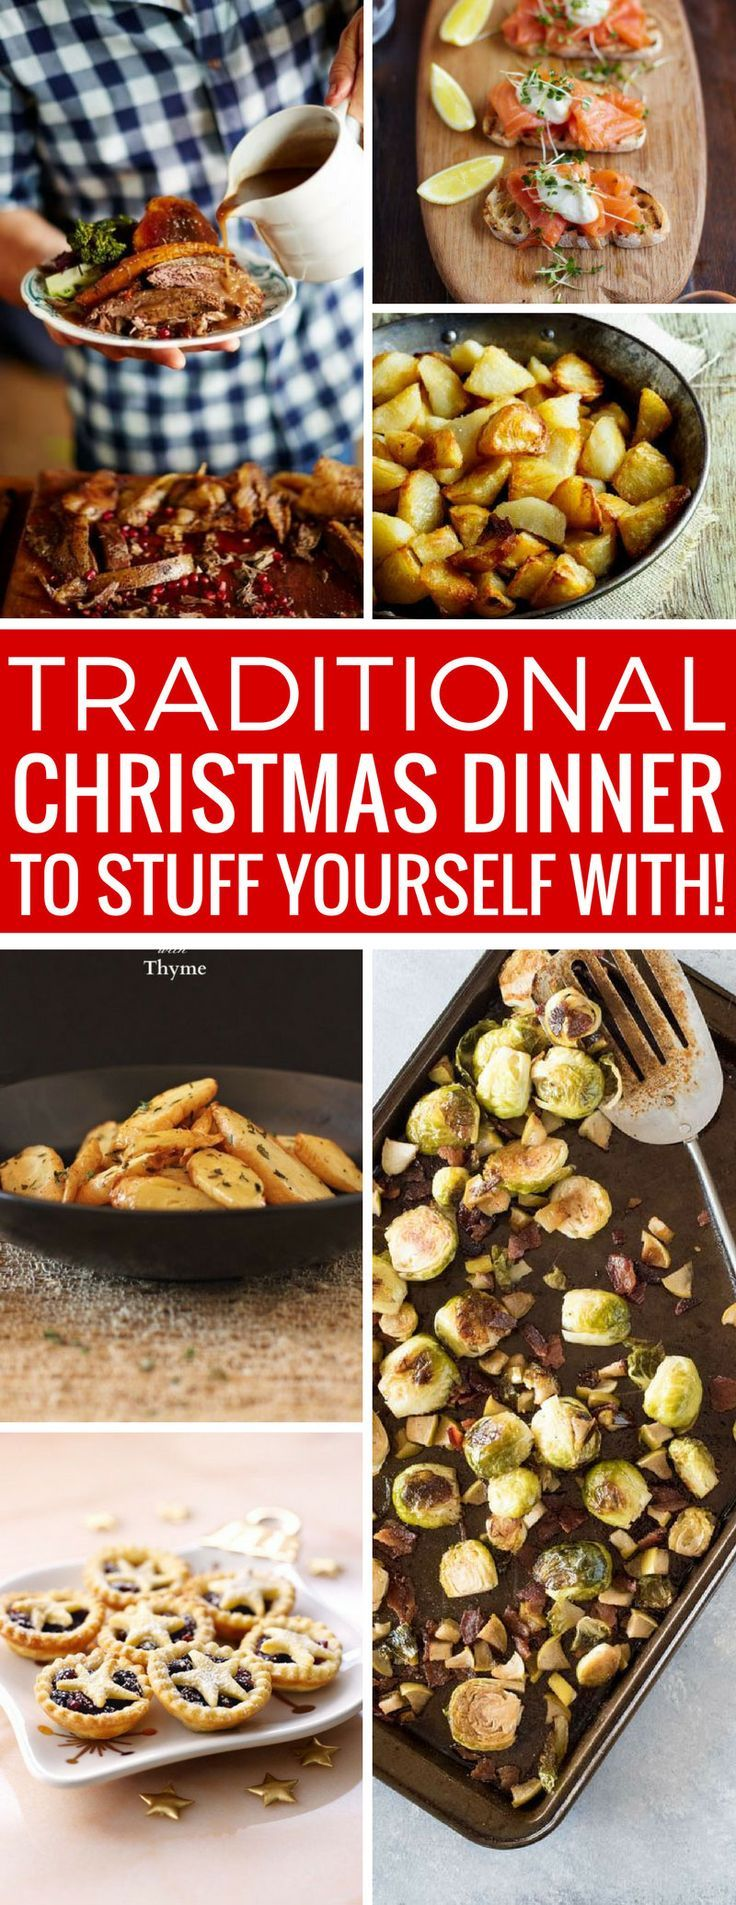 Oh boy - this traditional Christmas dinner menu looks amazing - and I know we'll all be in a food coma afterwards! Thanks for sharing!